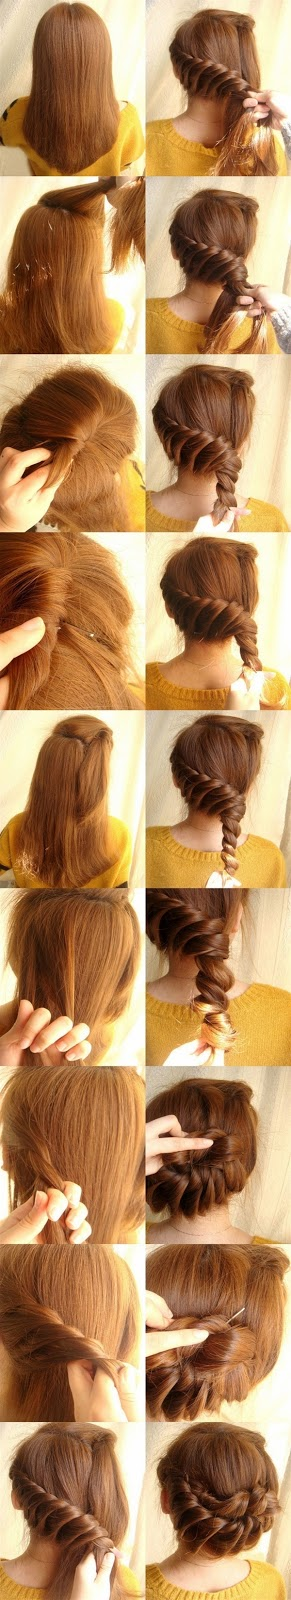 Step by step hairstyles easy made